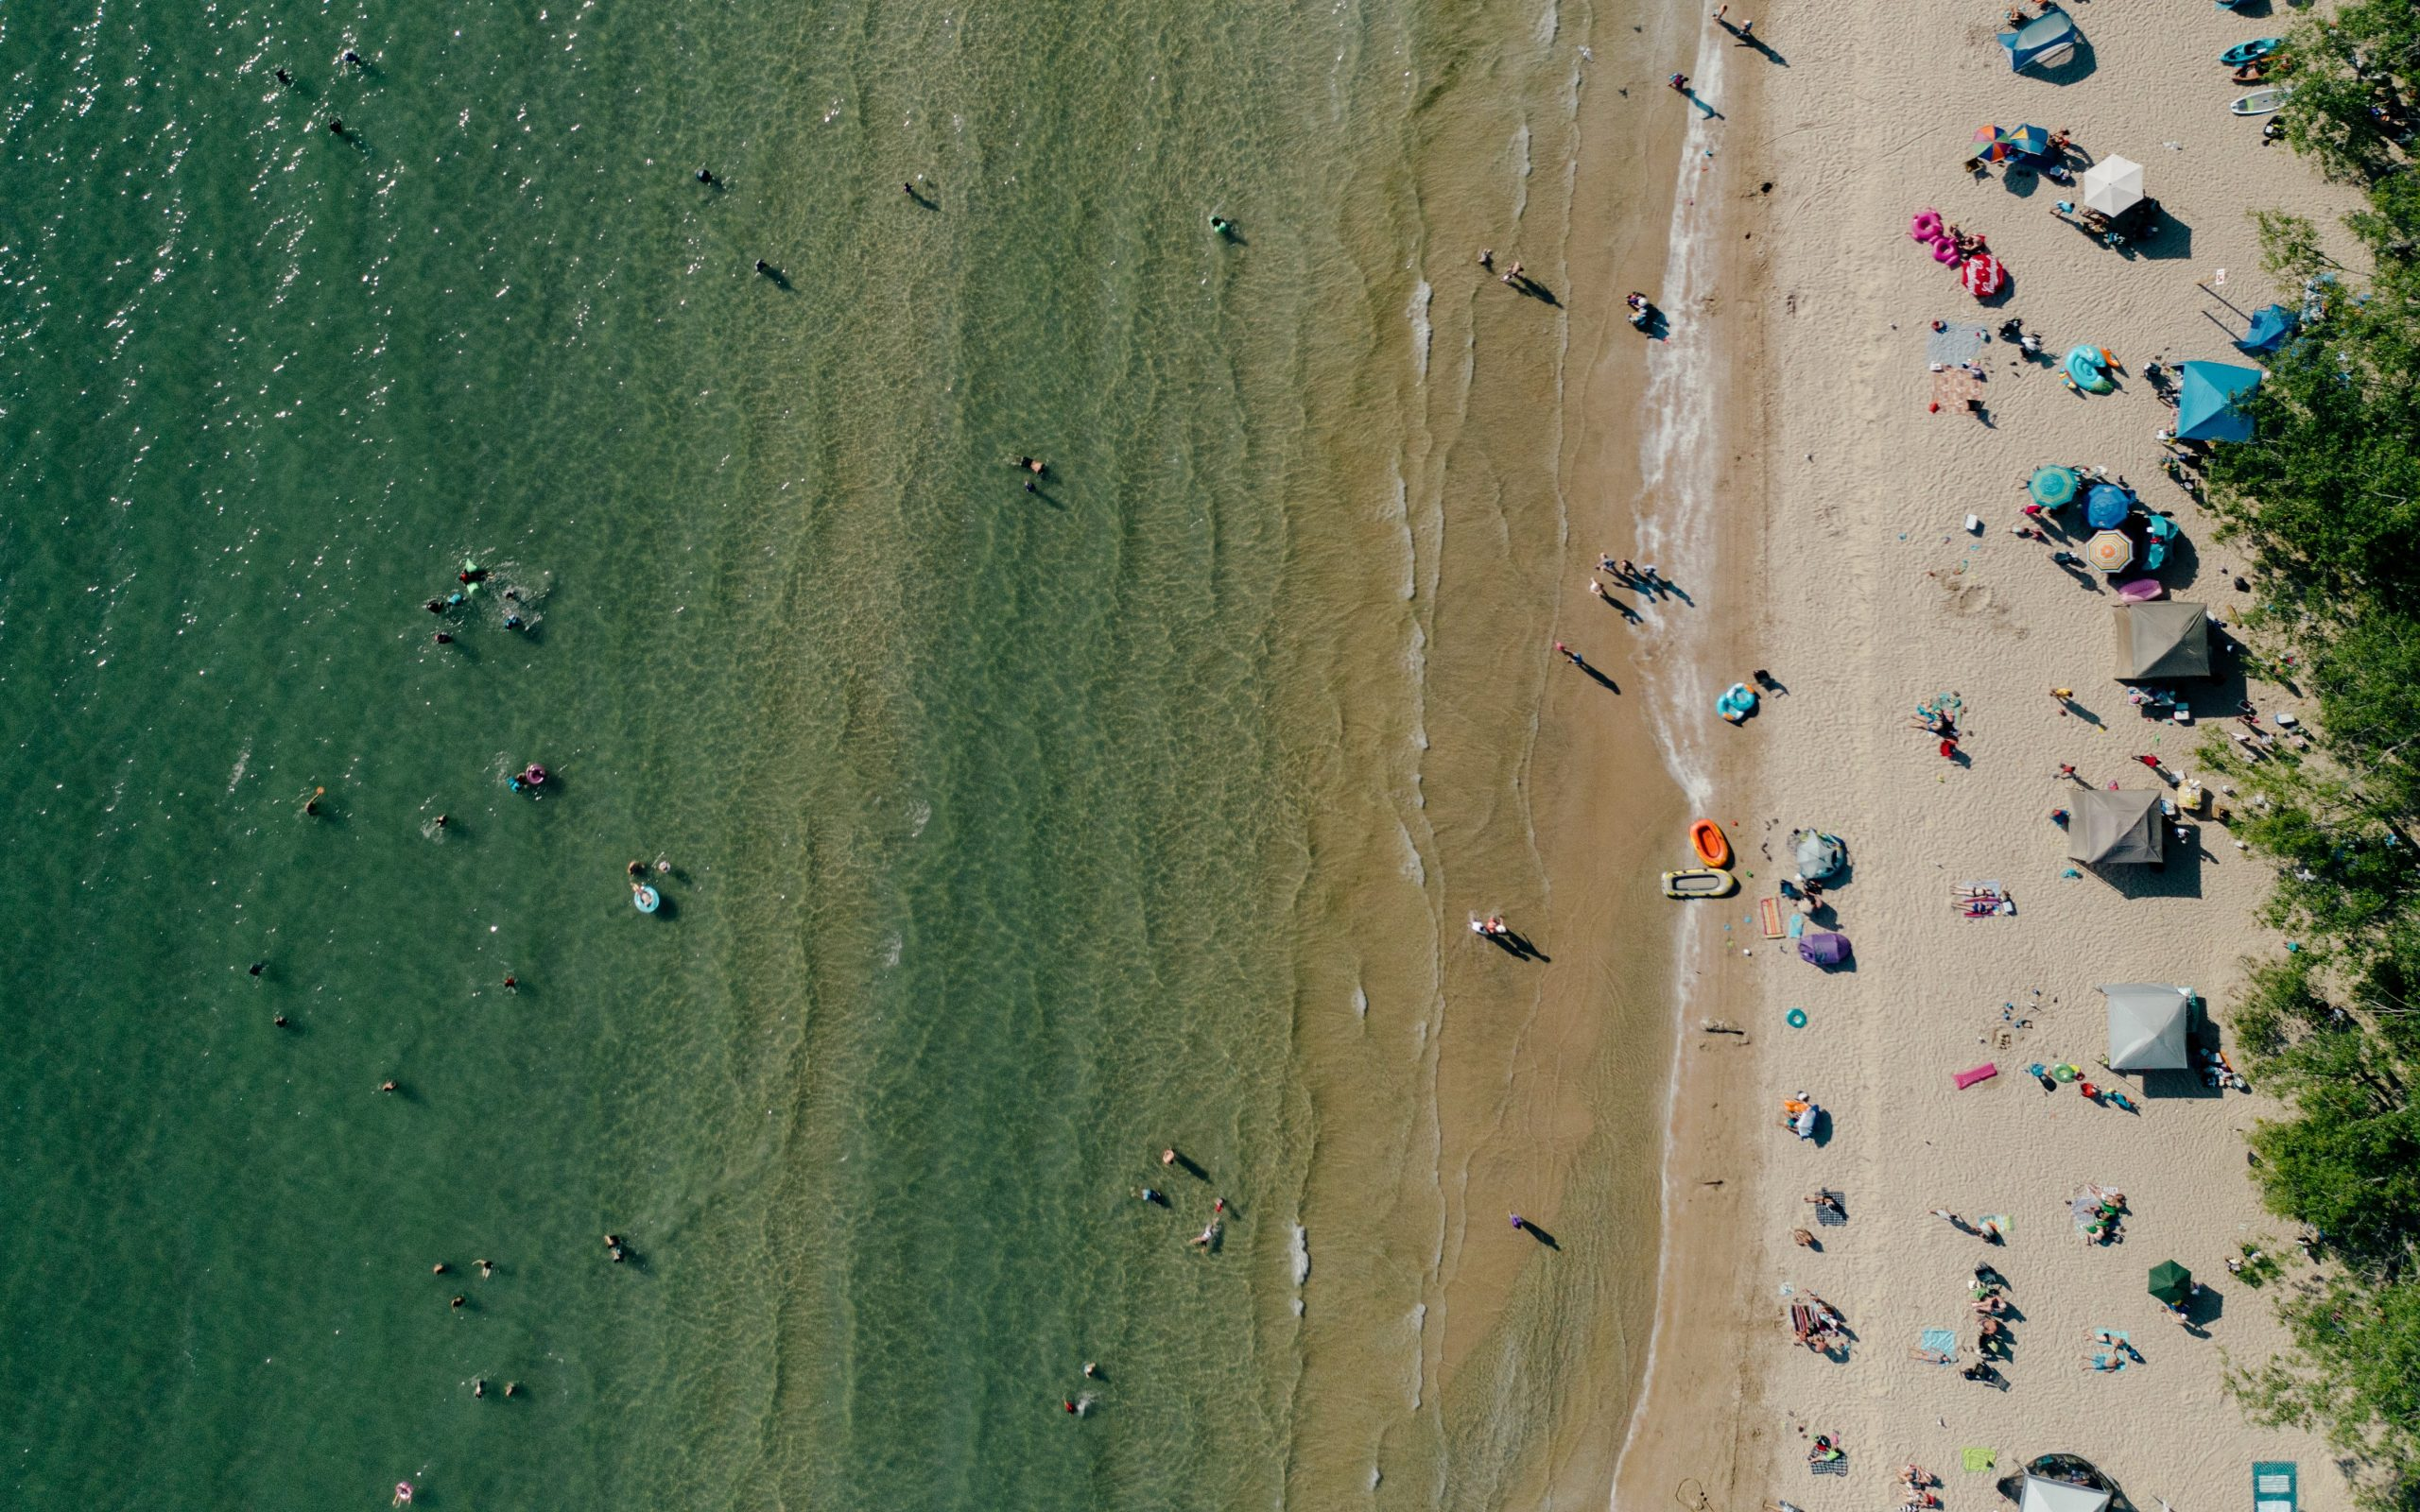 drone's eye view of a beach, people on the beach